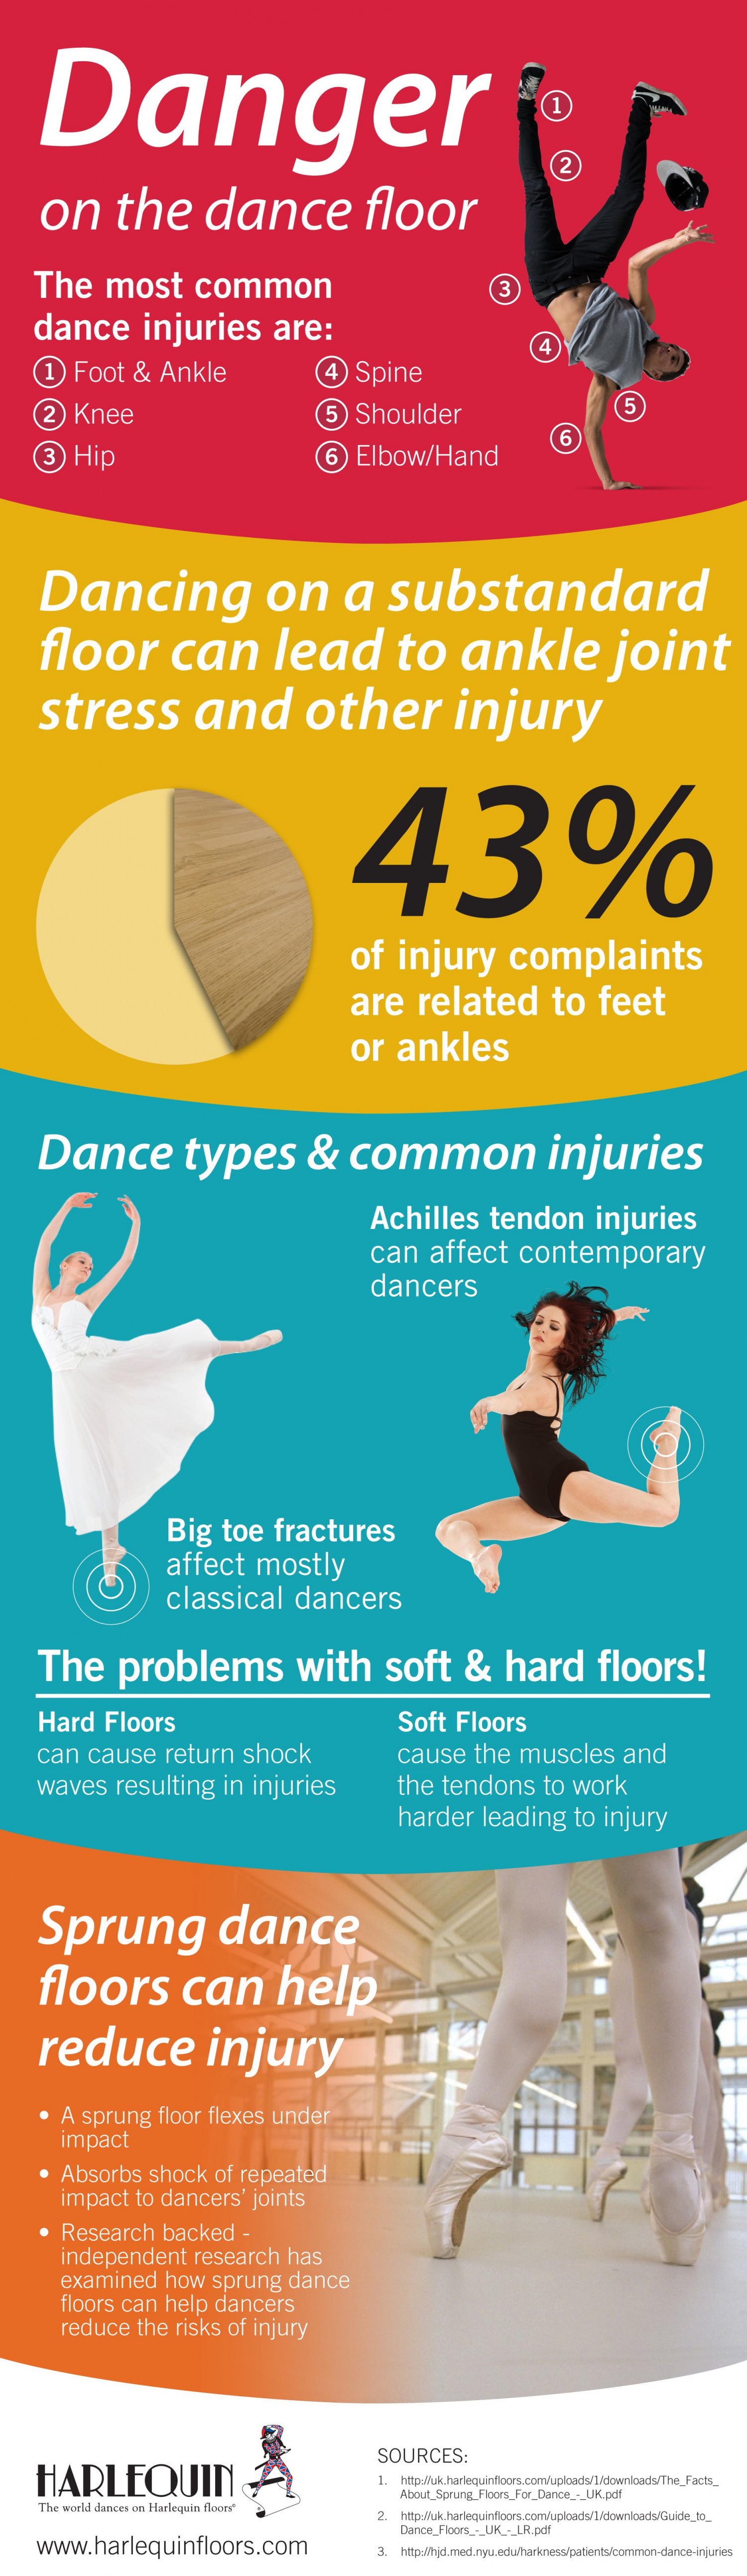 Danger on the Dance Floor Infographic